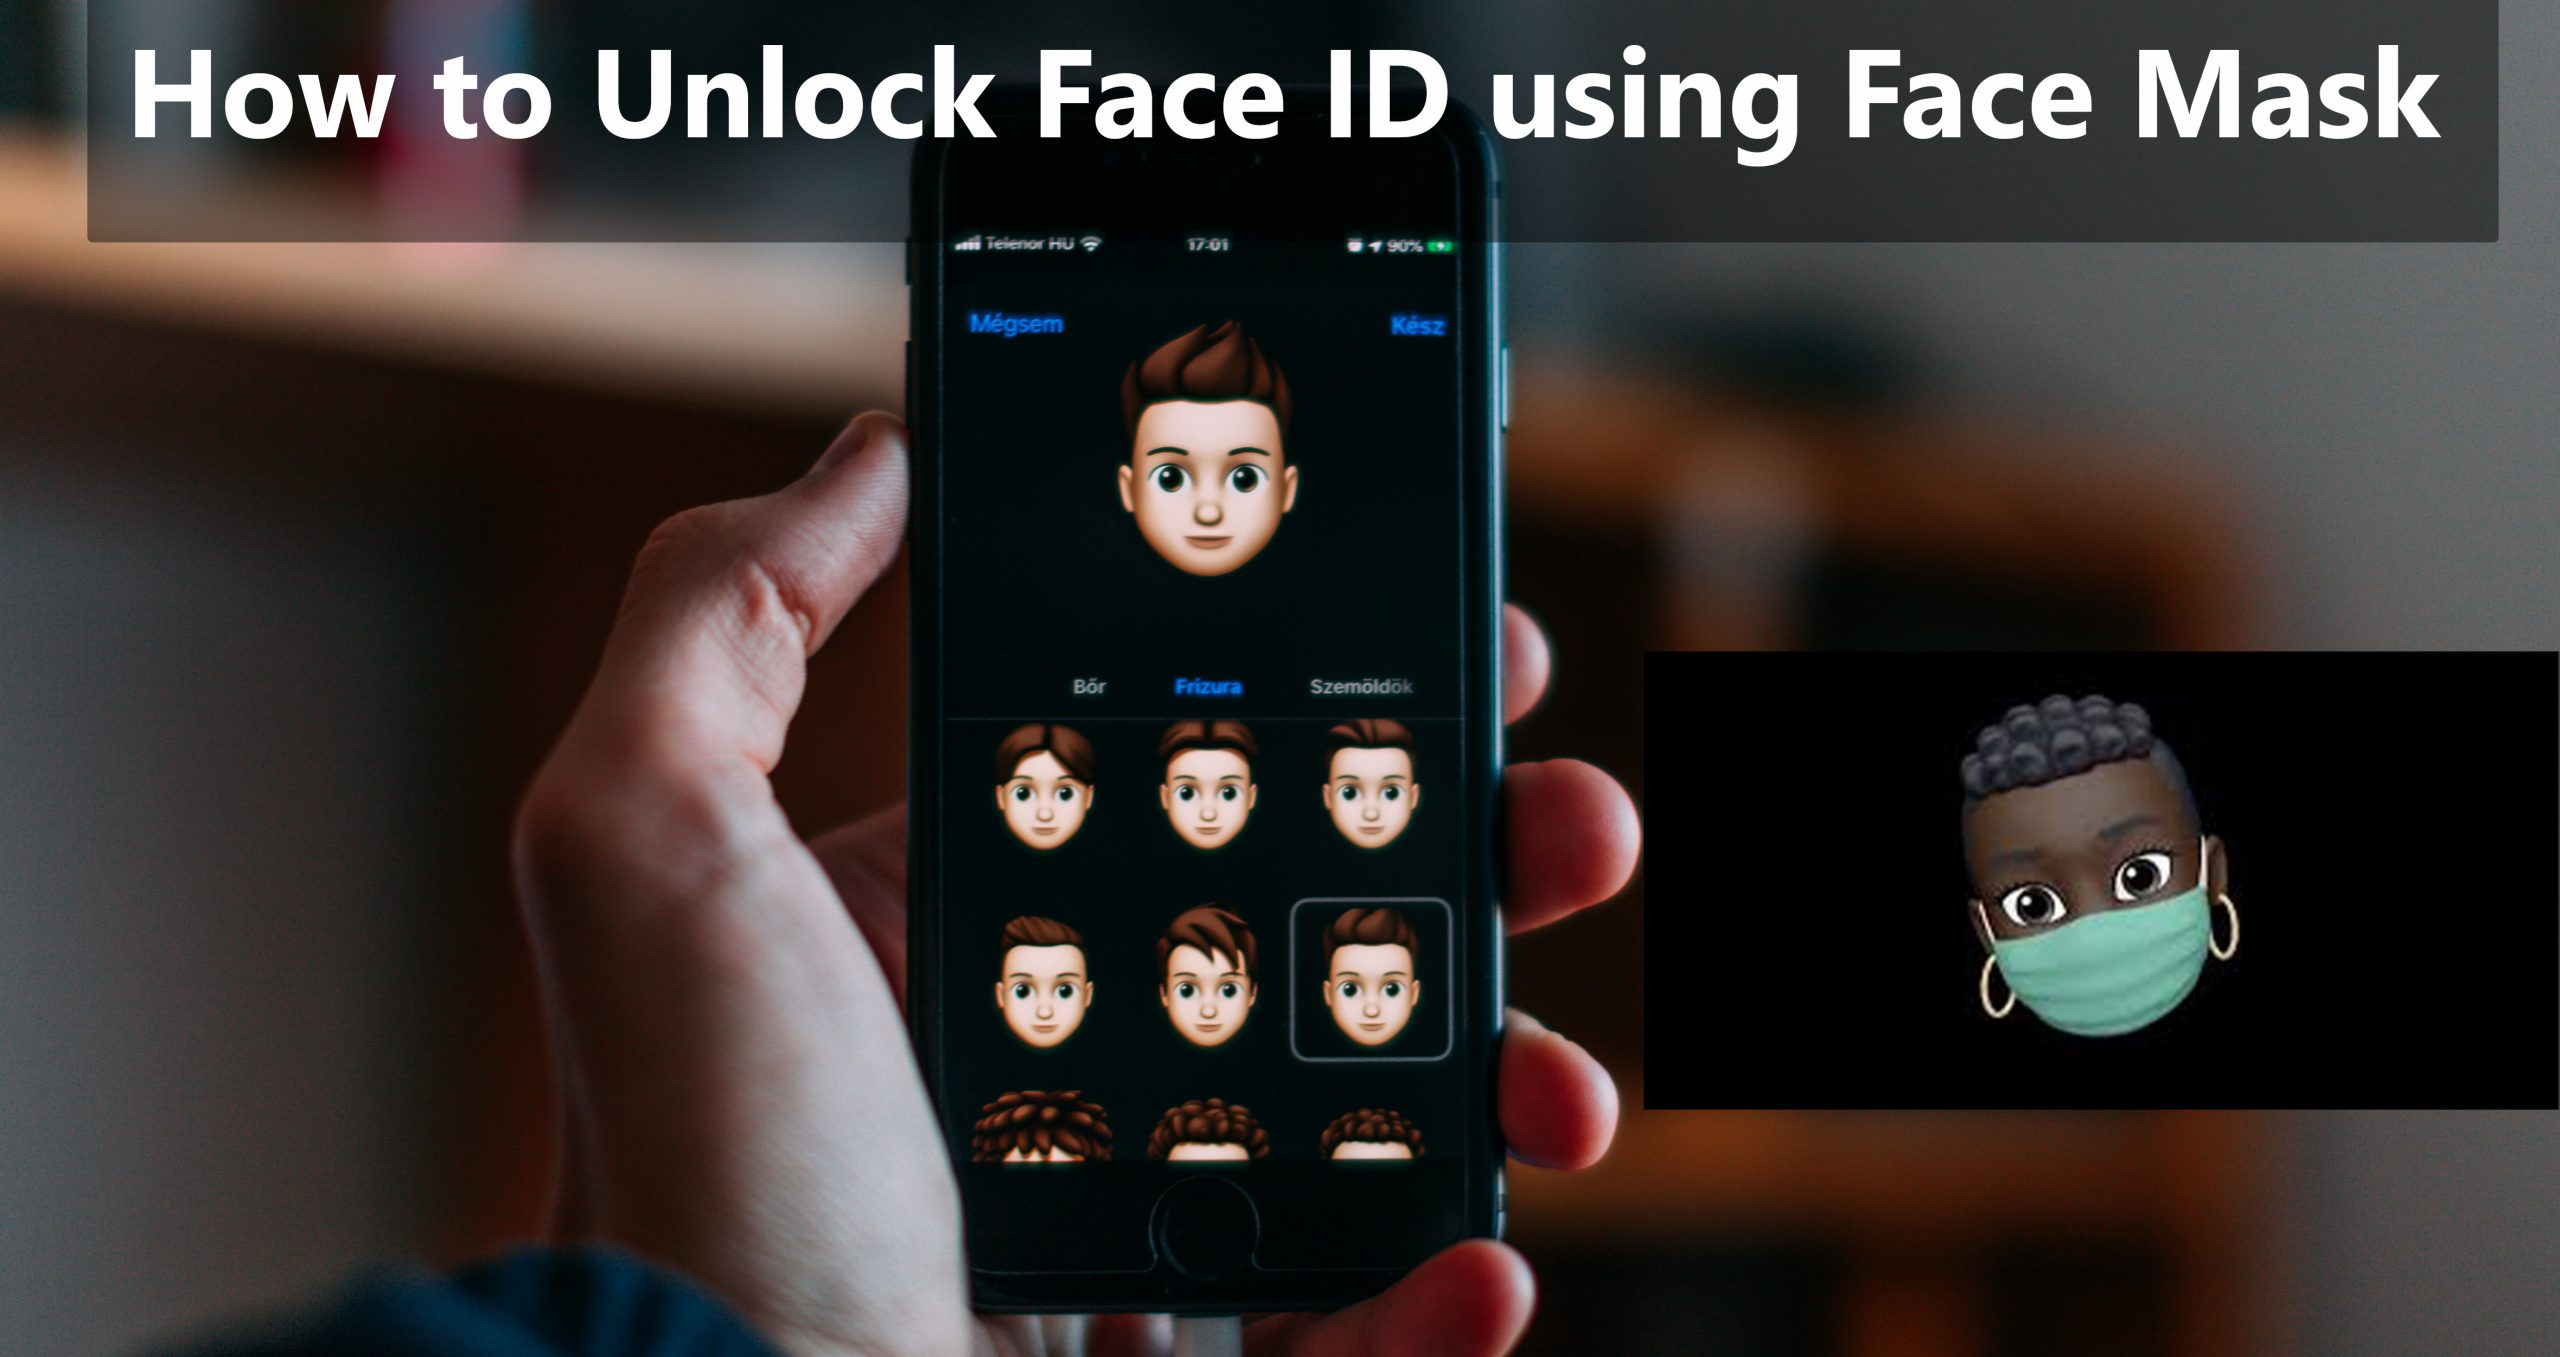 How to Unlock Face ID with Face Mask